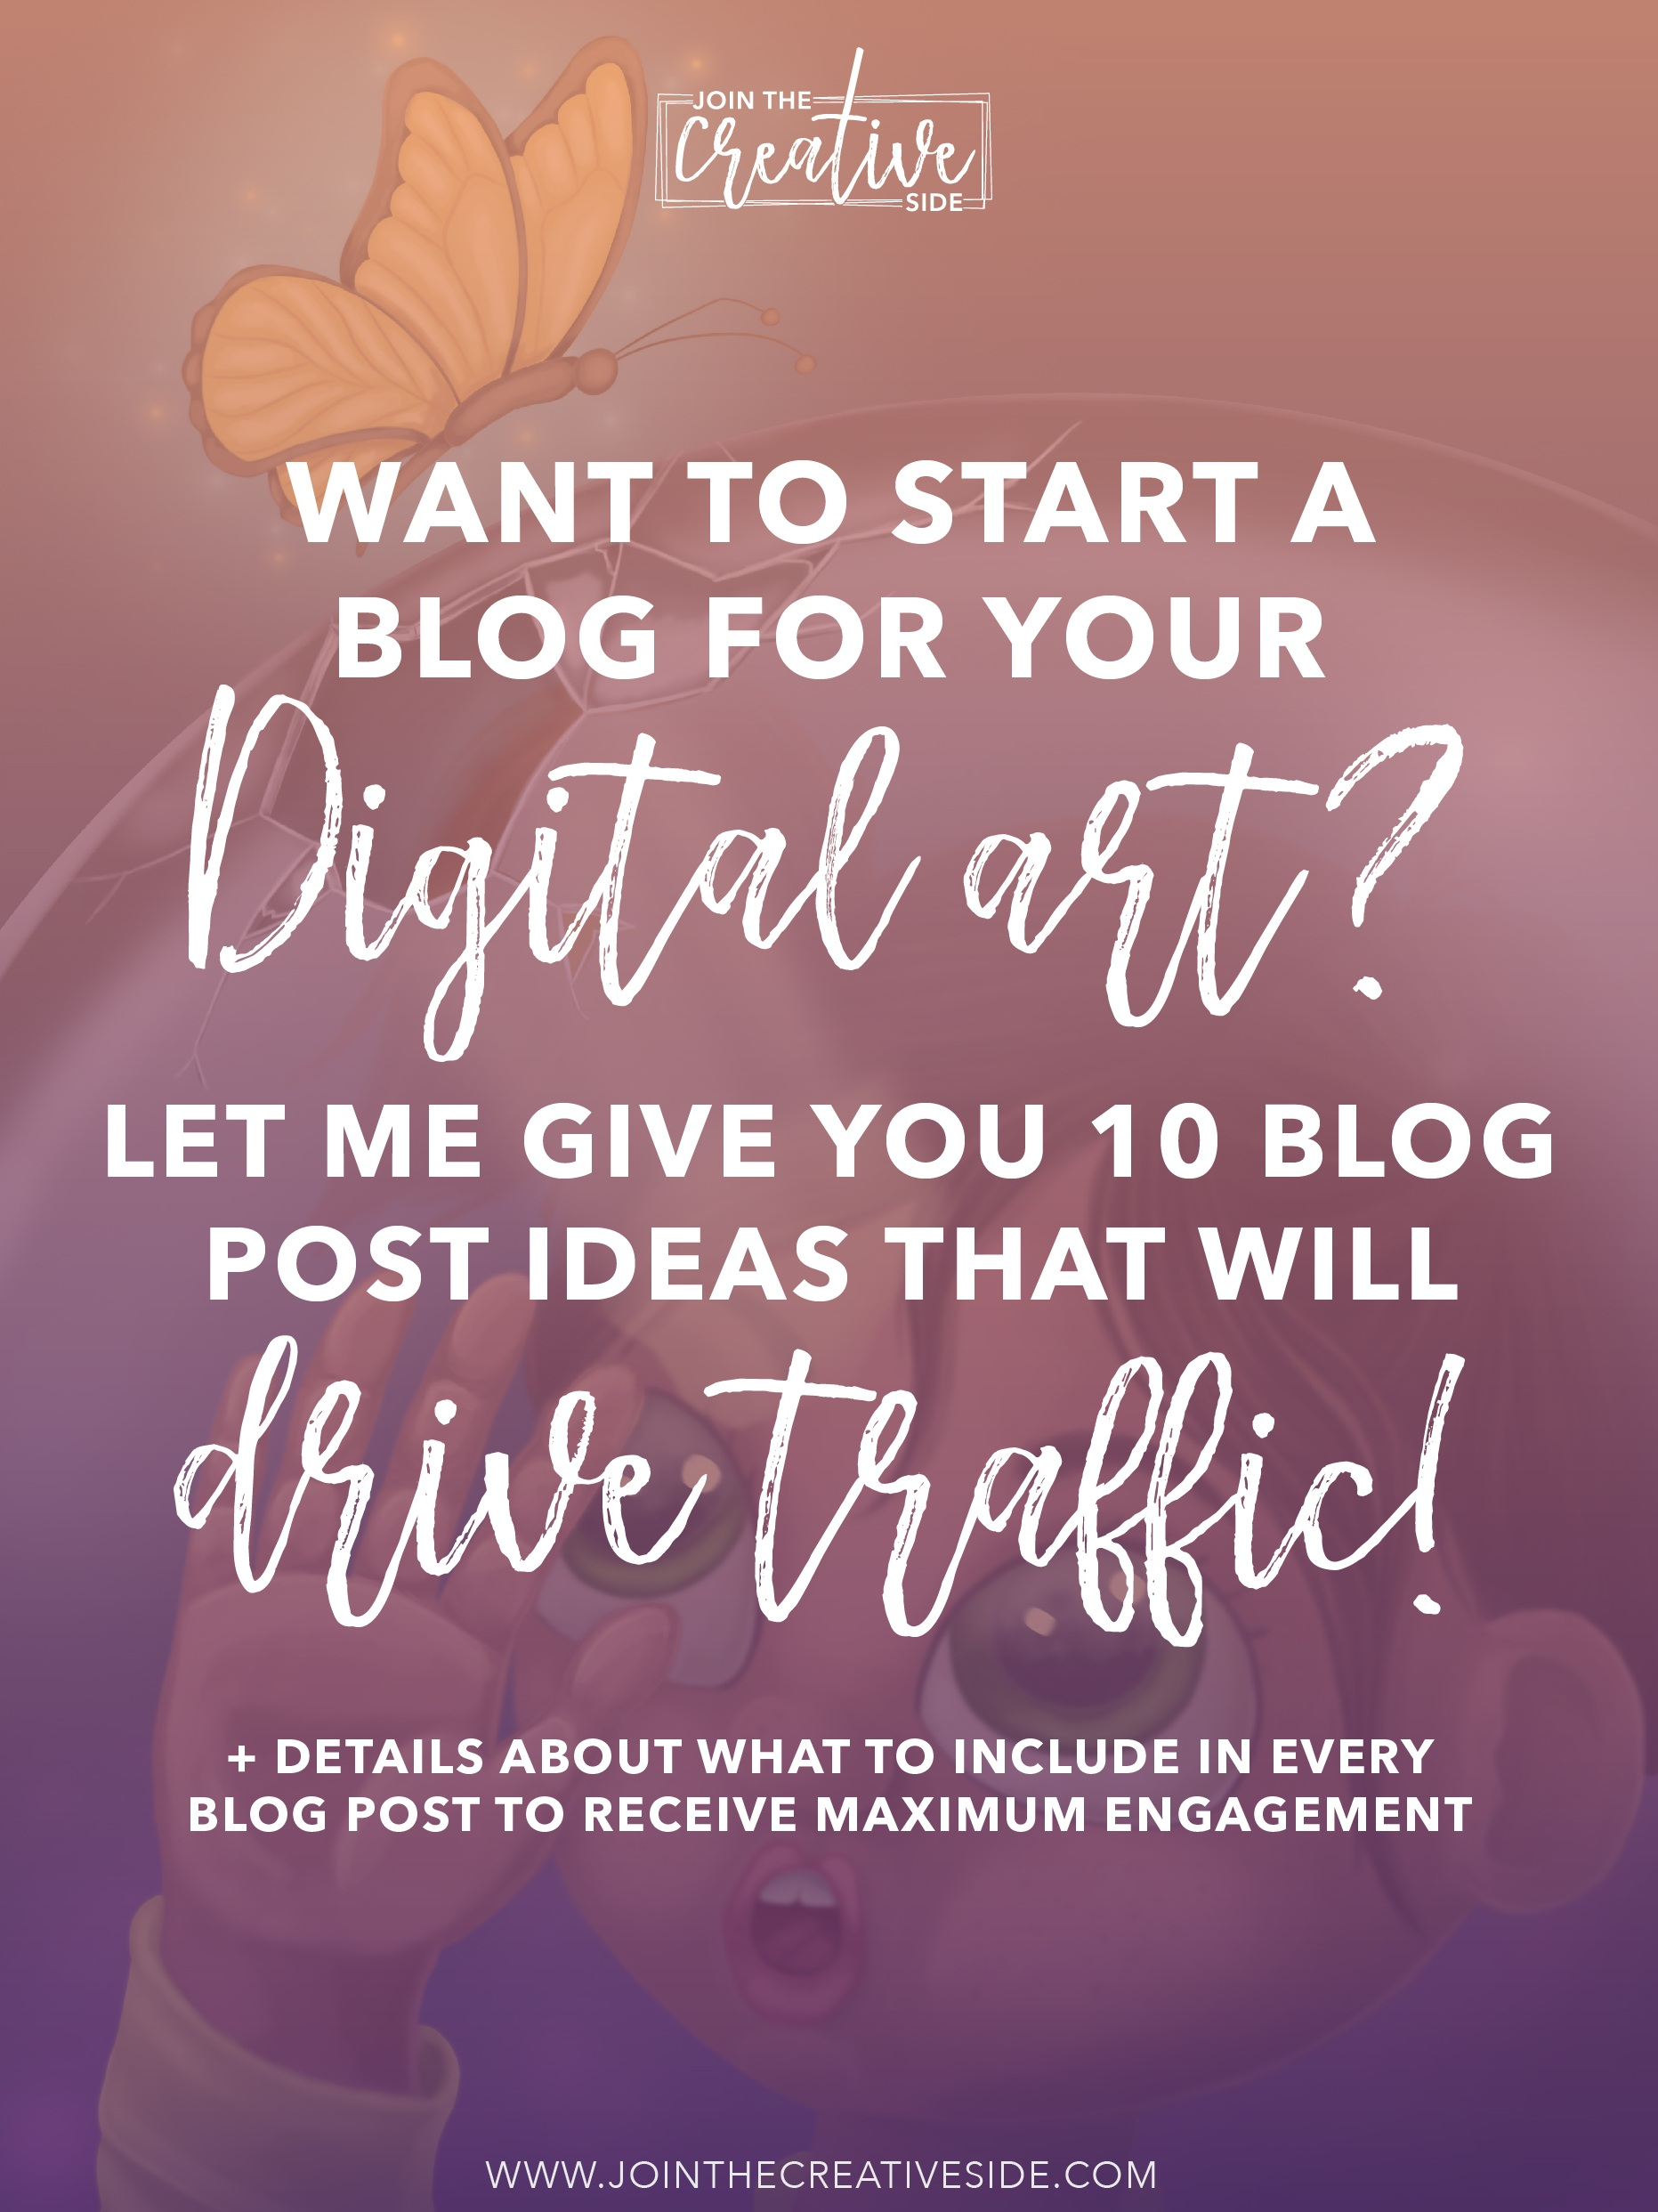 Hey artist! Have you started your art blog yet? You should! A blog allows you to build a loyal and engaged audience. Loyal fans lead to more shares of your content and artwork, and fans are more likely to purchase your artwork. Are you motivated to start a blog for artists, but you don't know where to blog about? I will give you 10 blog posts ideas (plus what to include in each post) for digital artists. Click through to read it! #bloggingforartists #Artwebsite #portfoliowebsite #blogpostideas